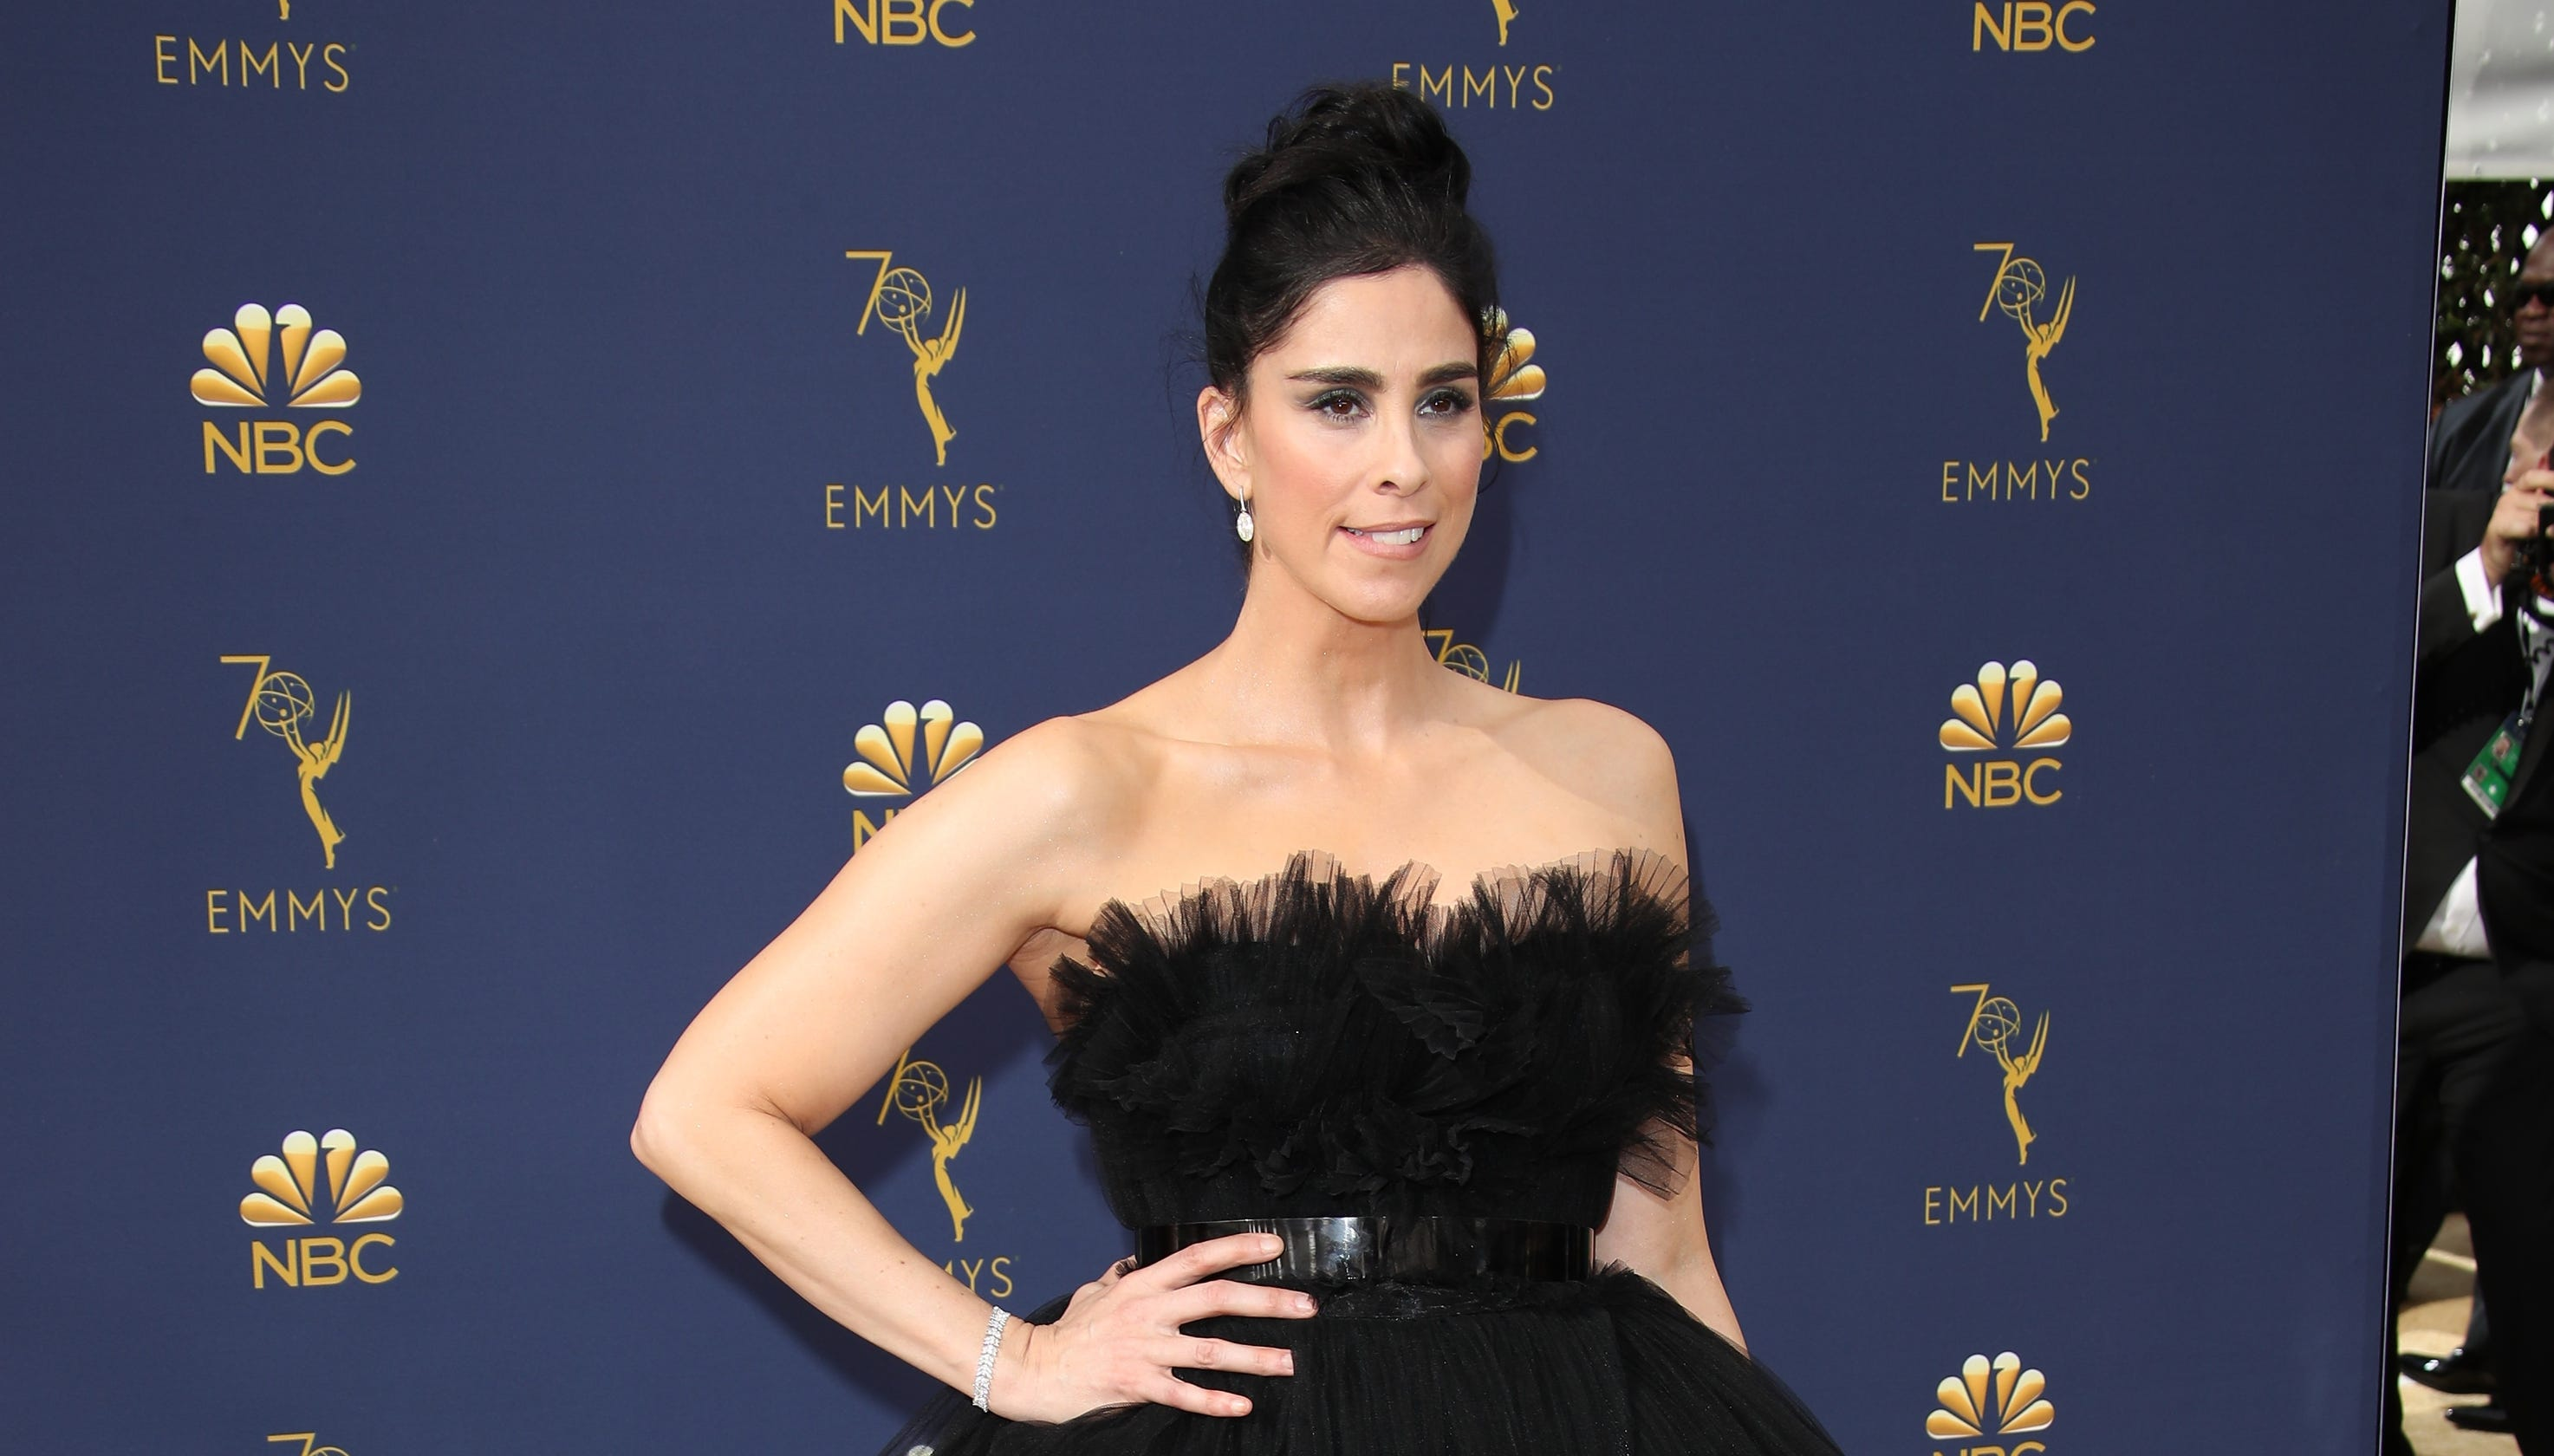 Sarah Silverman reveals she was recently fired from a movie over her 2007 blackface character